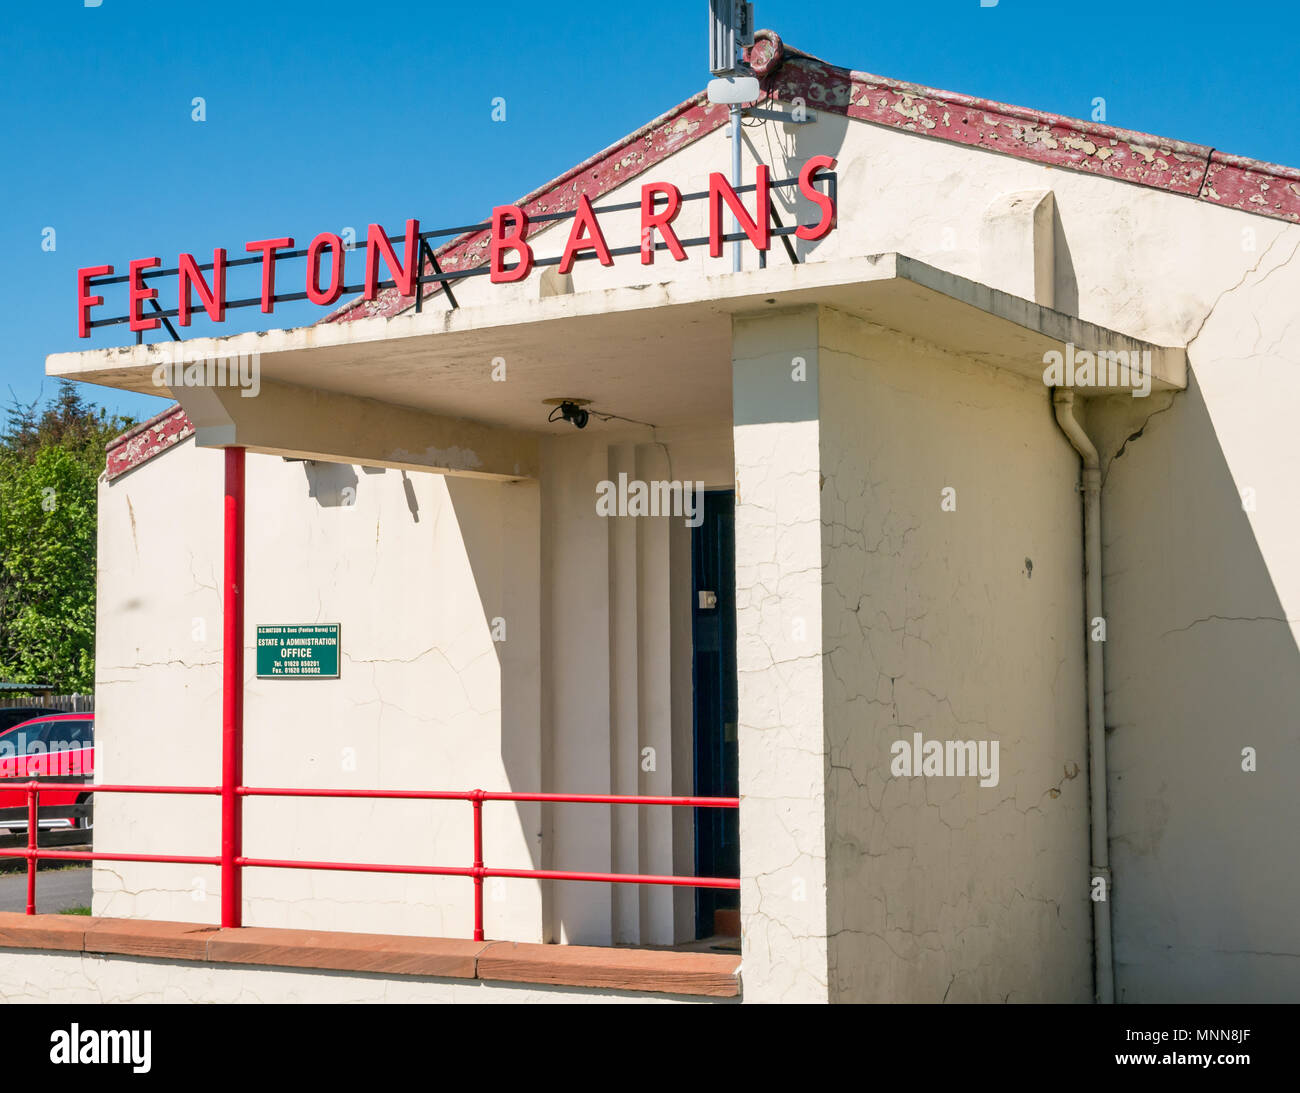 Former Royal Air Force officers mess building, Drem airfield now Fenton Barns retail village, Drem, Scotland, UK - Stock Image